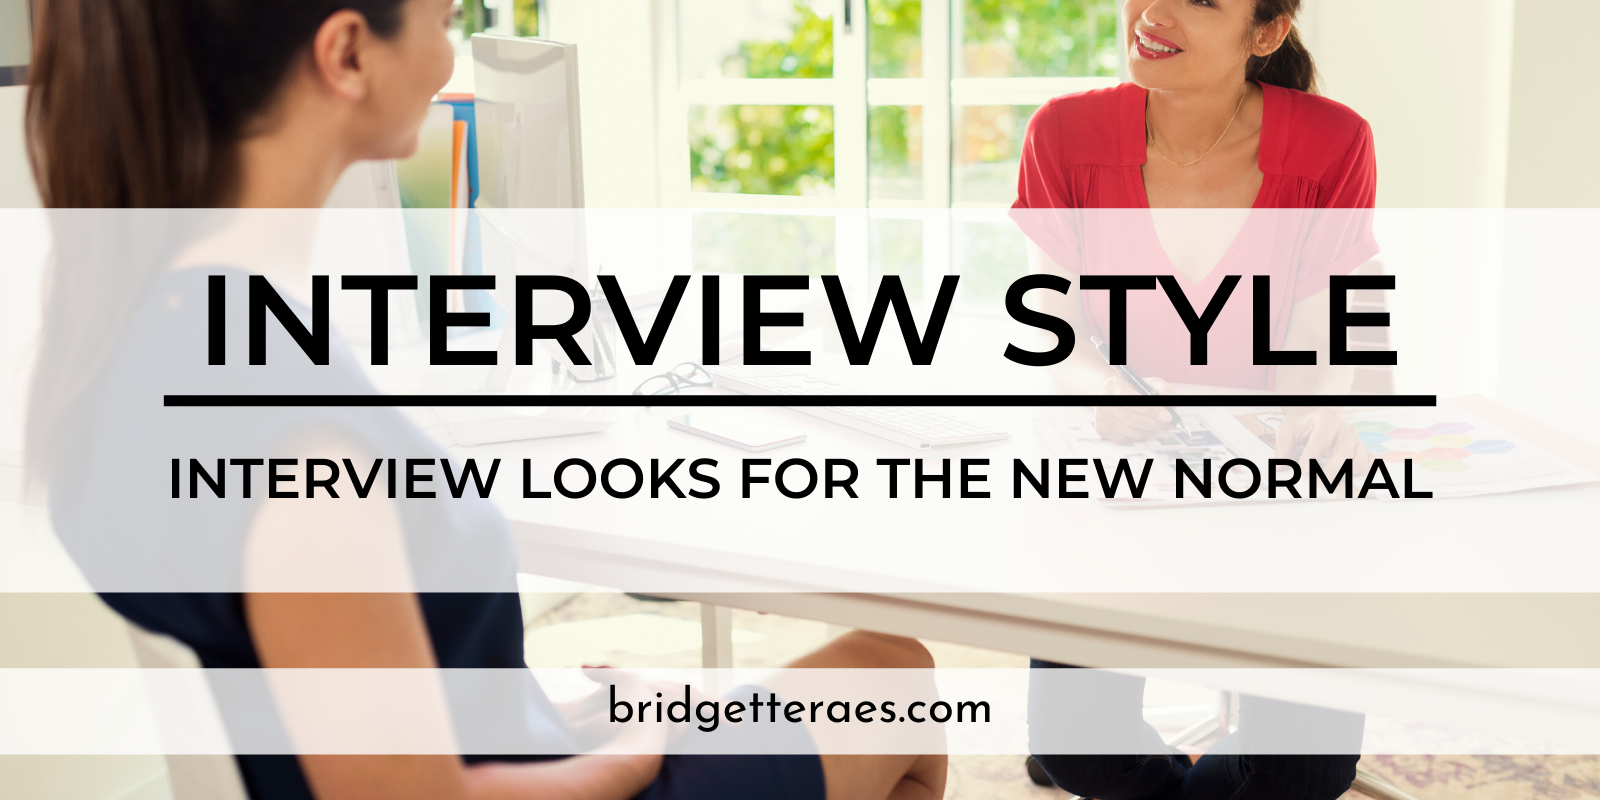 Interview Style: Interview Looks for the New Normal